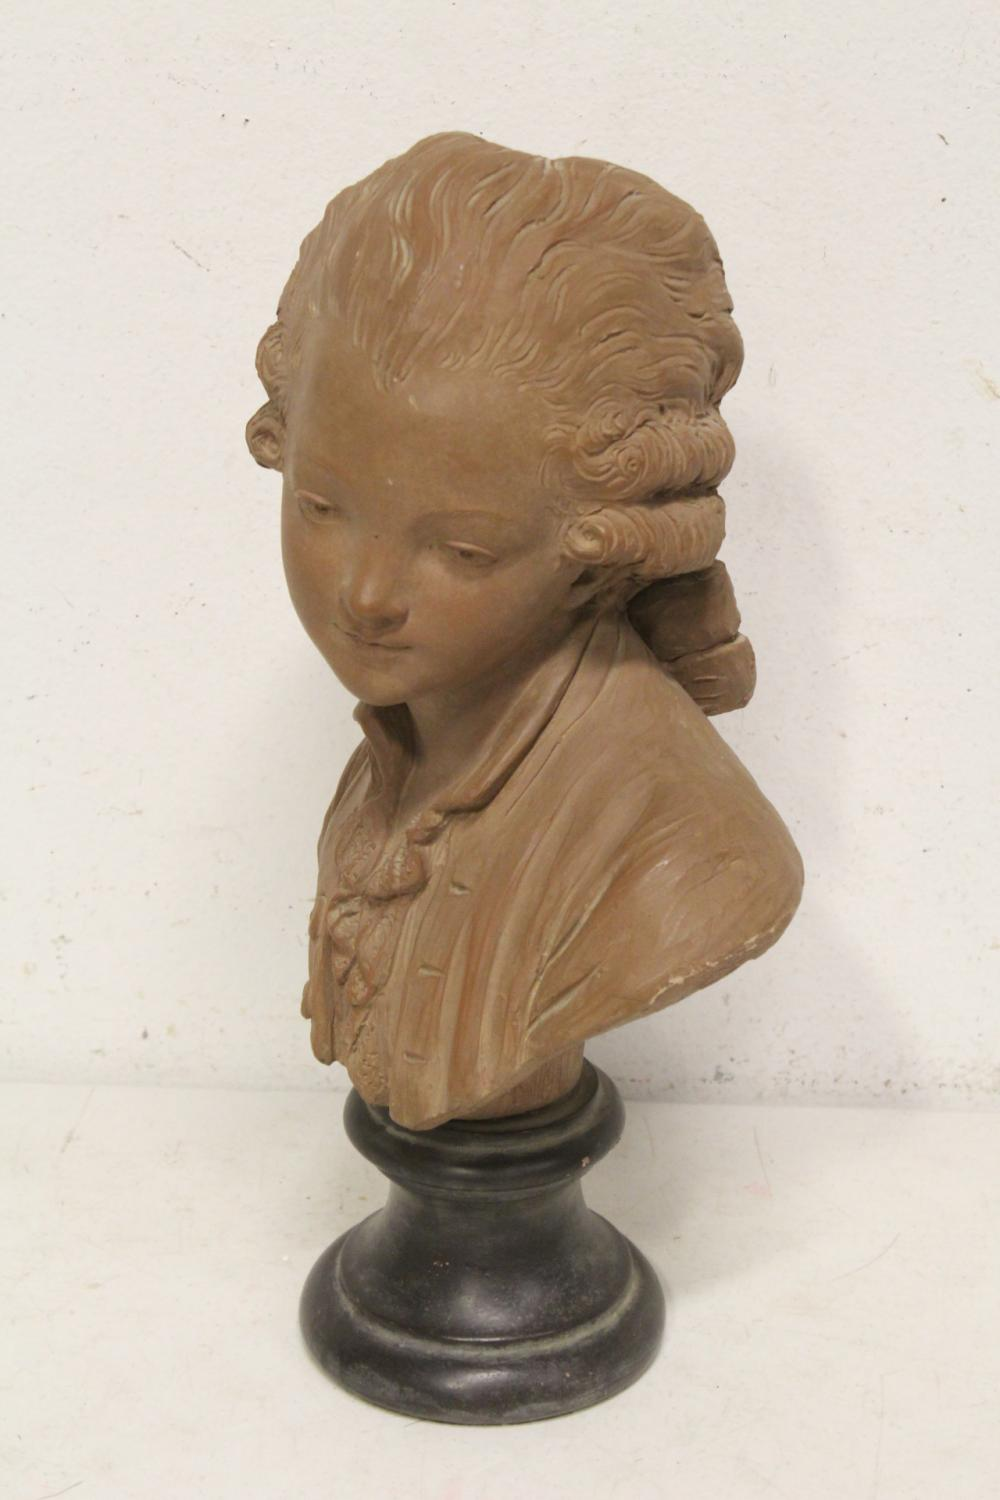 Lot 100: A pottery/bisque sculpture to depict bust of boy